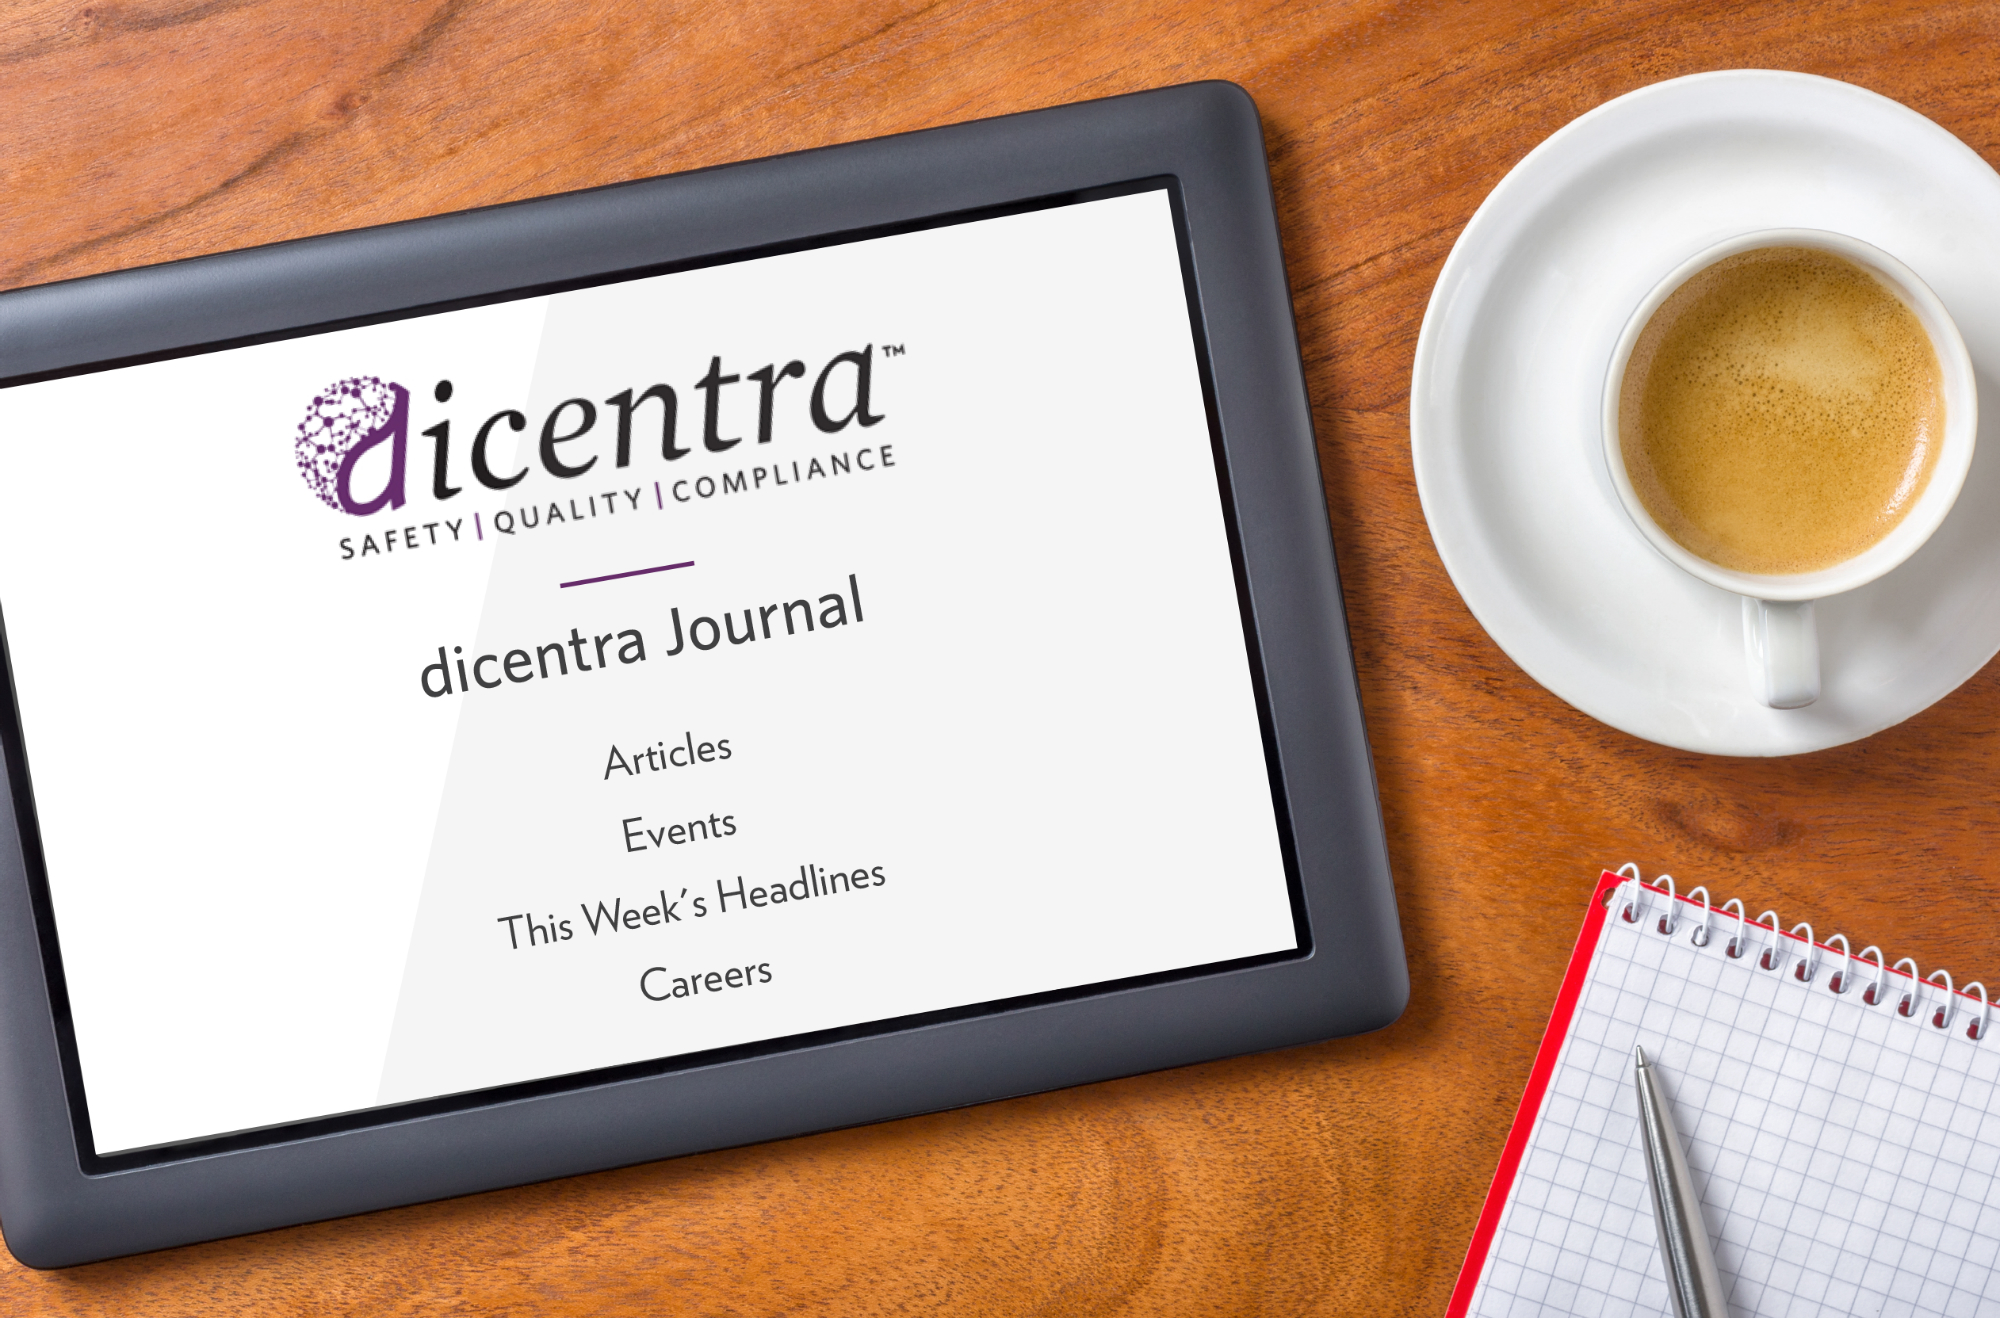 dicentra Journal: June